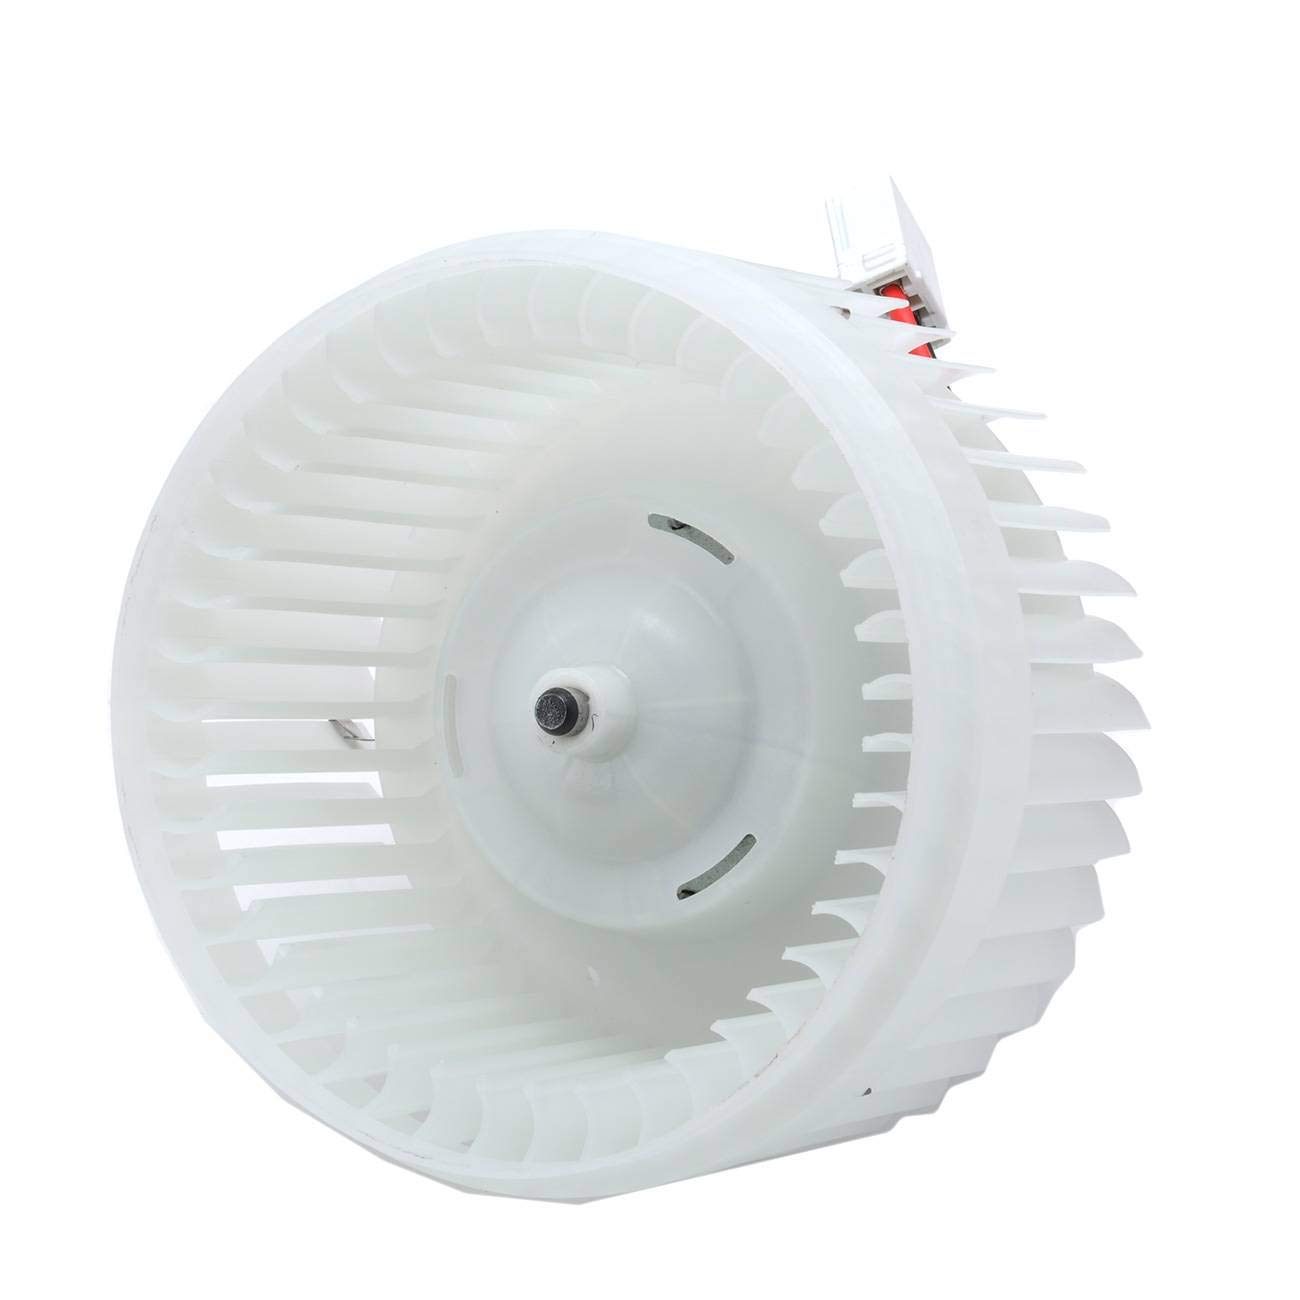 NEW A//C AC Heater Blower Motor w// Fan Cage for Volvo XC70 XC90 S60 S80 V70 USA